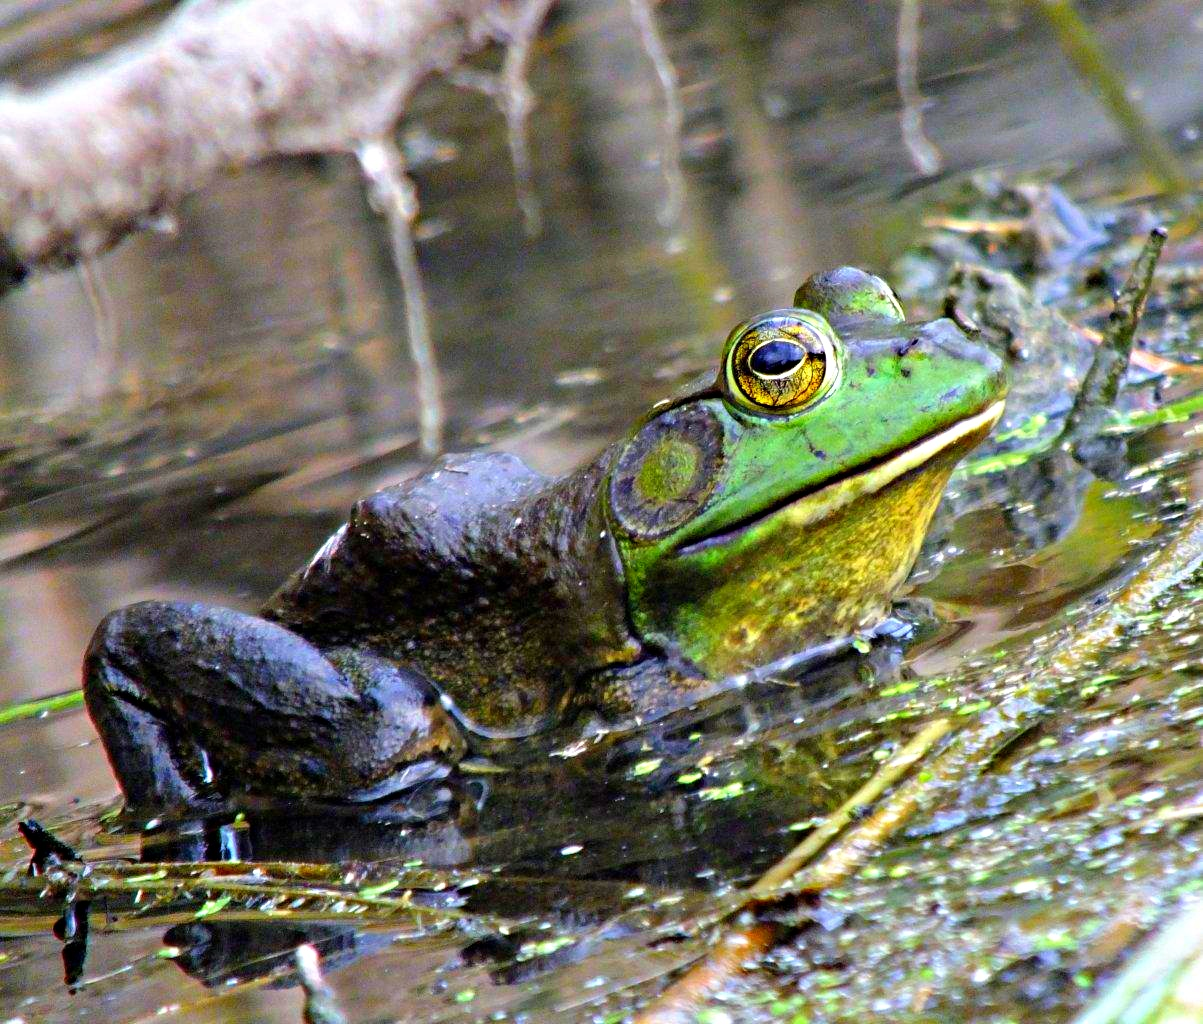 Bullfrog chillin' .... with a little bug by his nostrils...  by Thomas Peace 2013